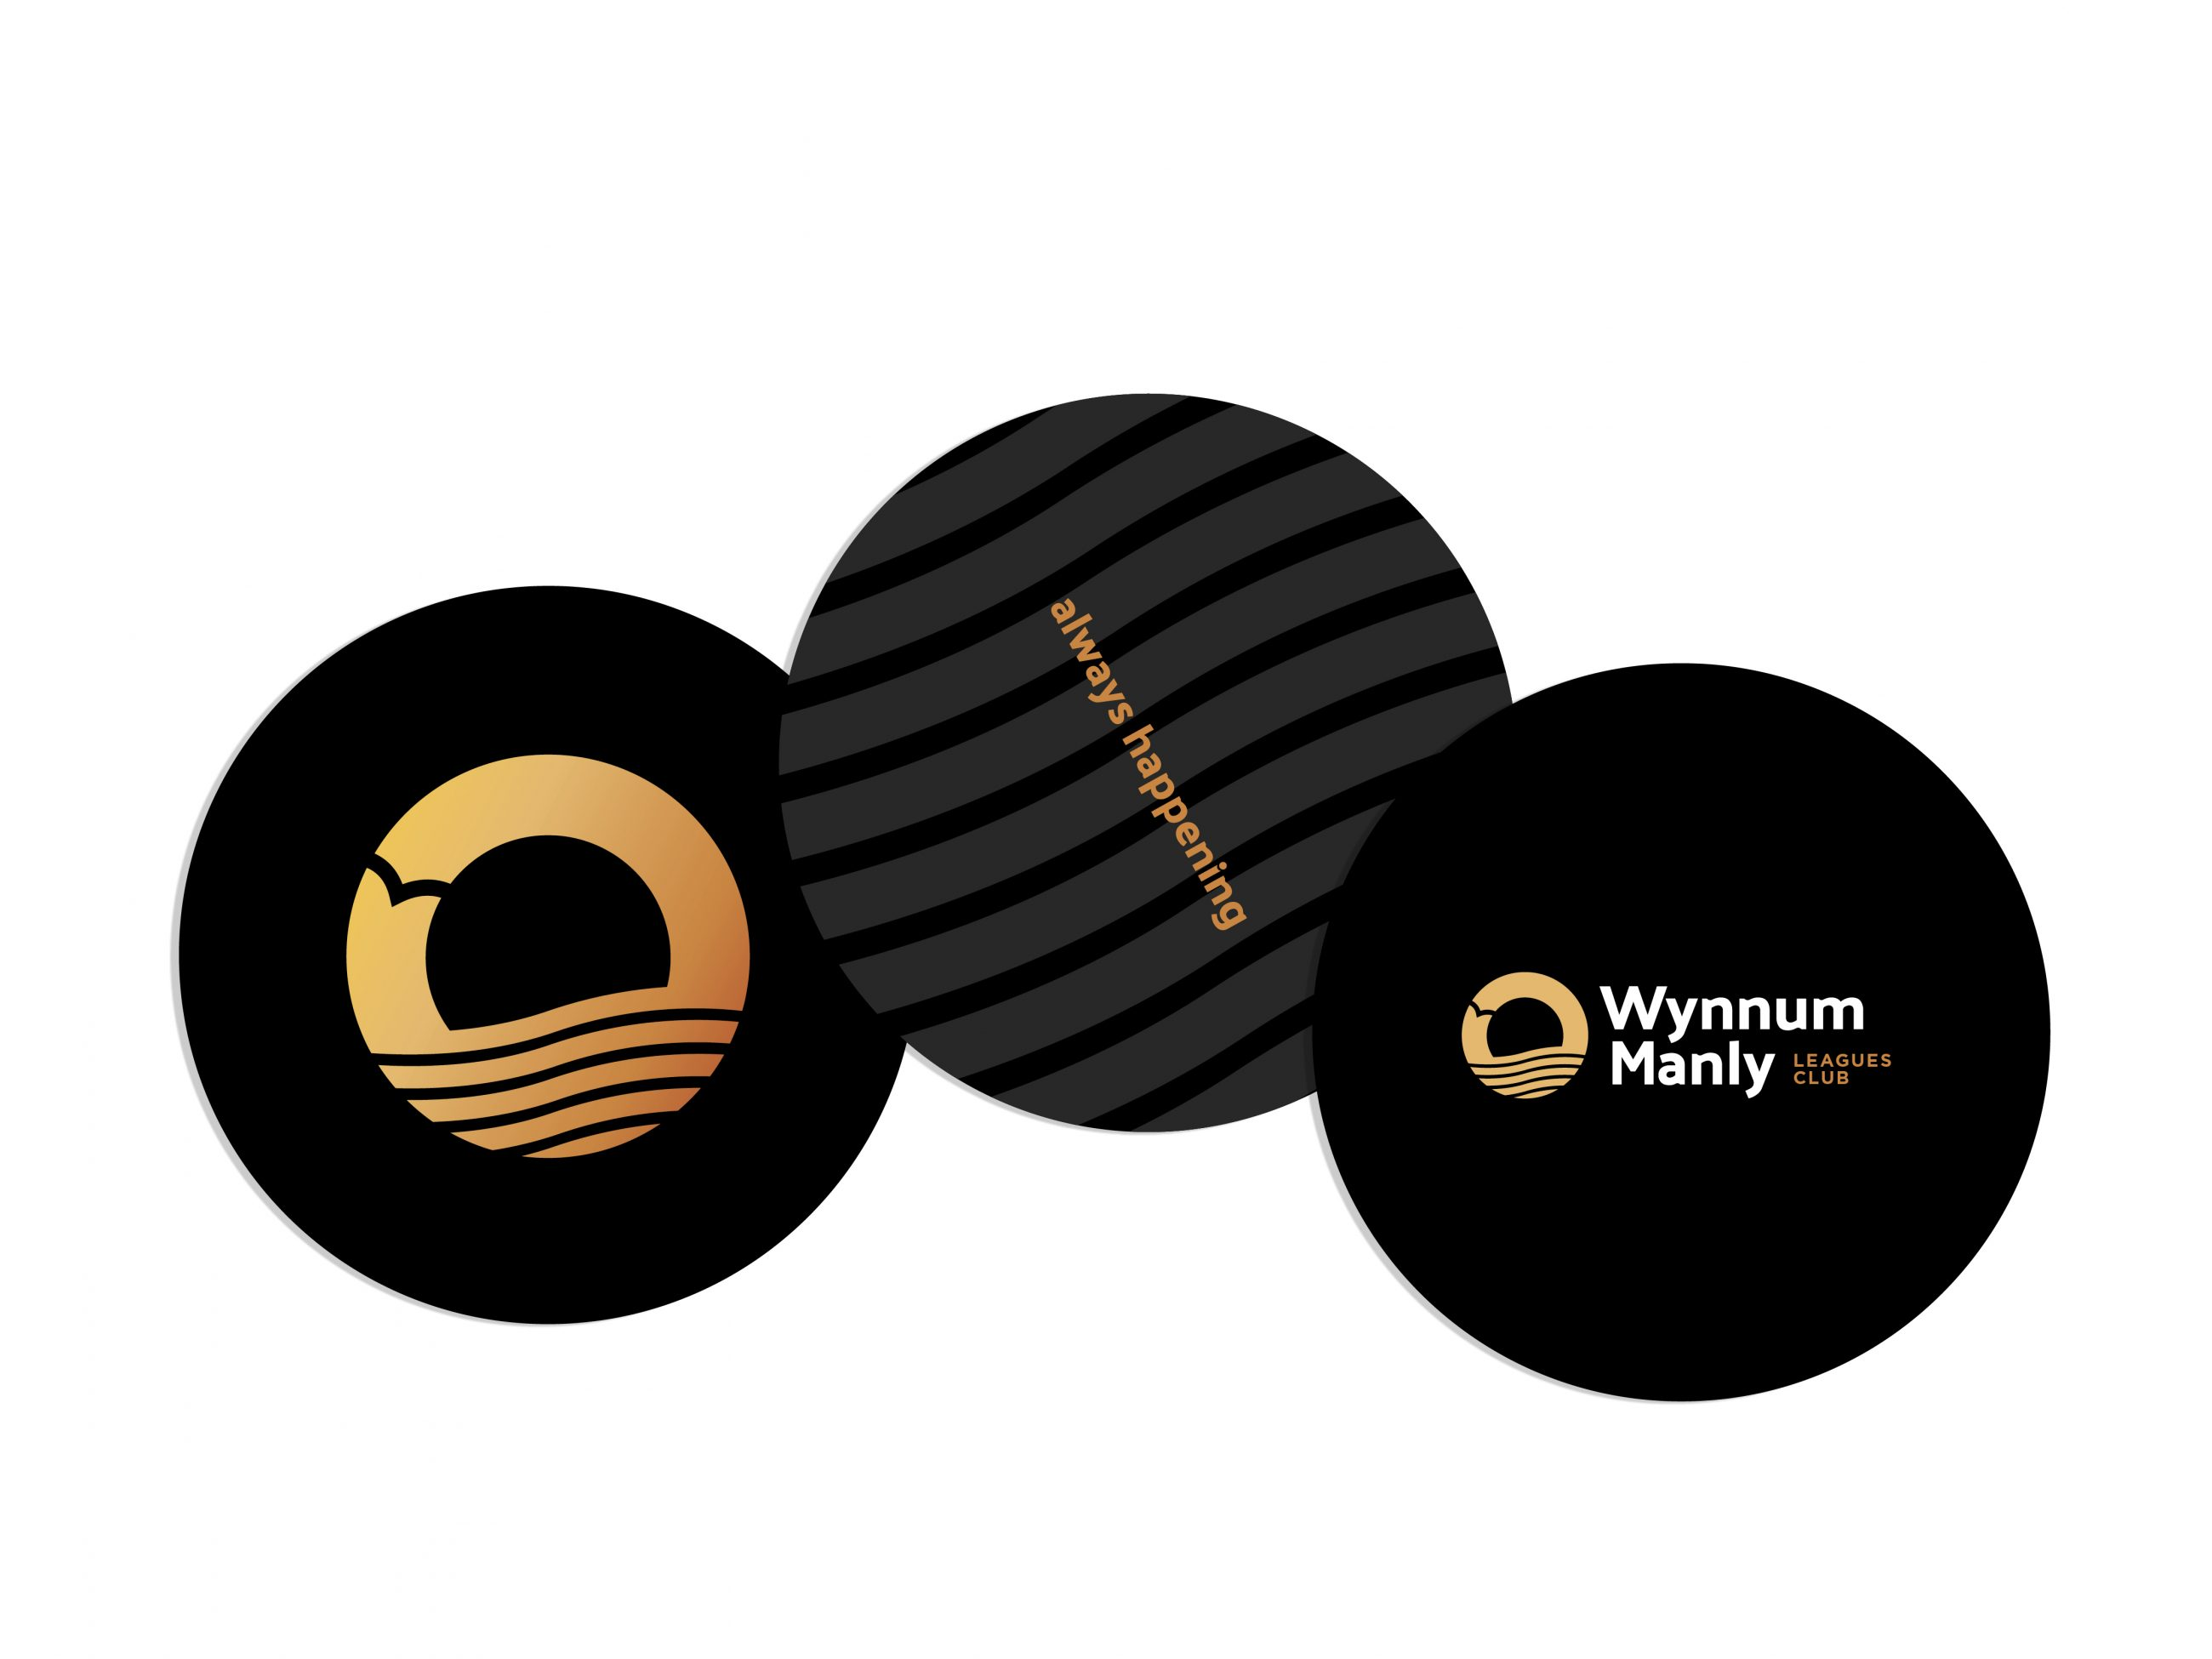 Branded coaster design for community and leagues club